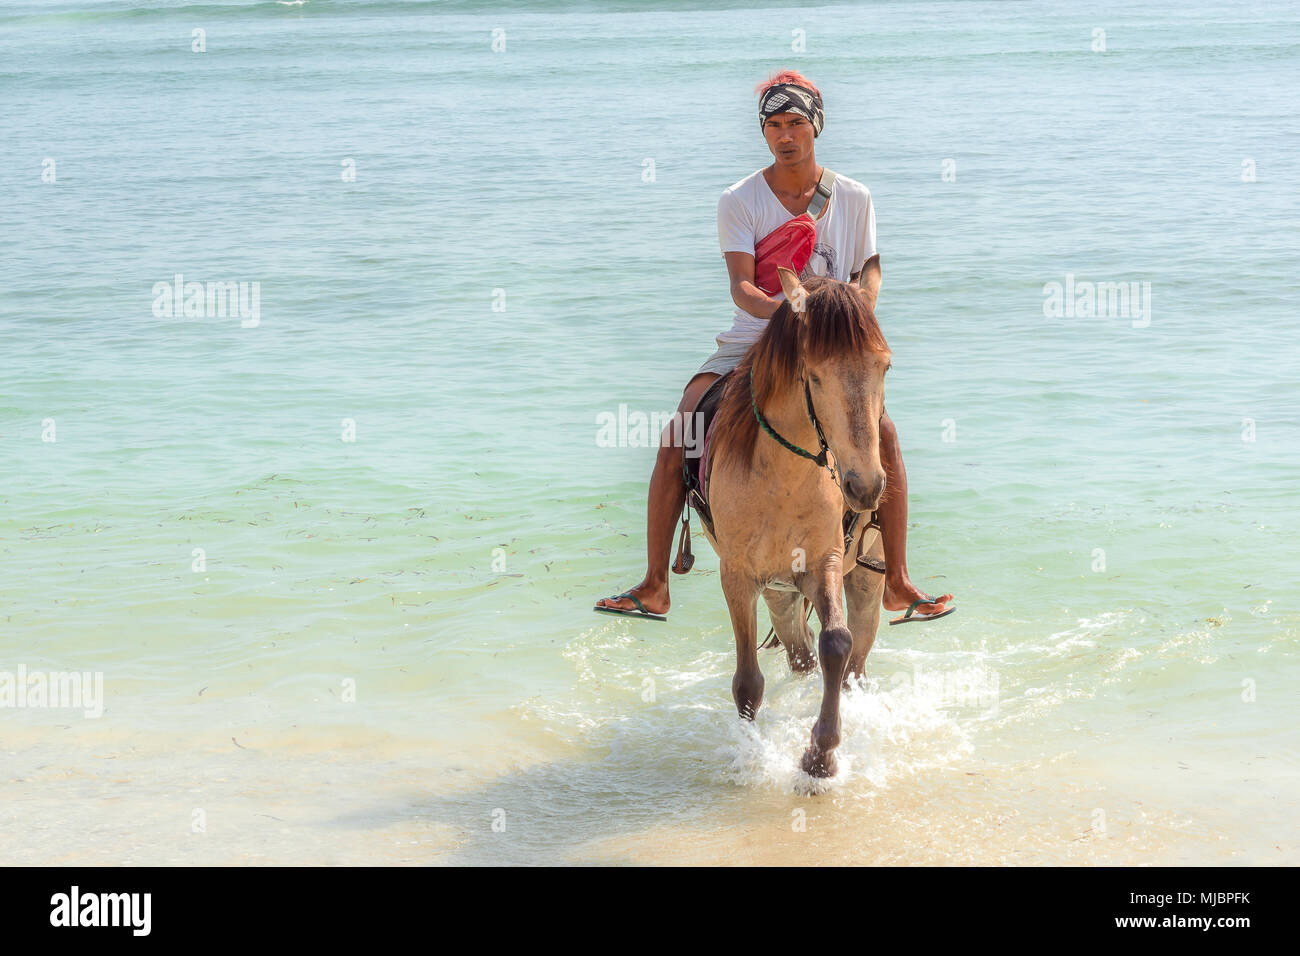 Indonesian man riding a horse in the blue and green water on the beach towards the camera, april 24, 2018, Gili Trawangan, Indonesia Stock Photo